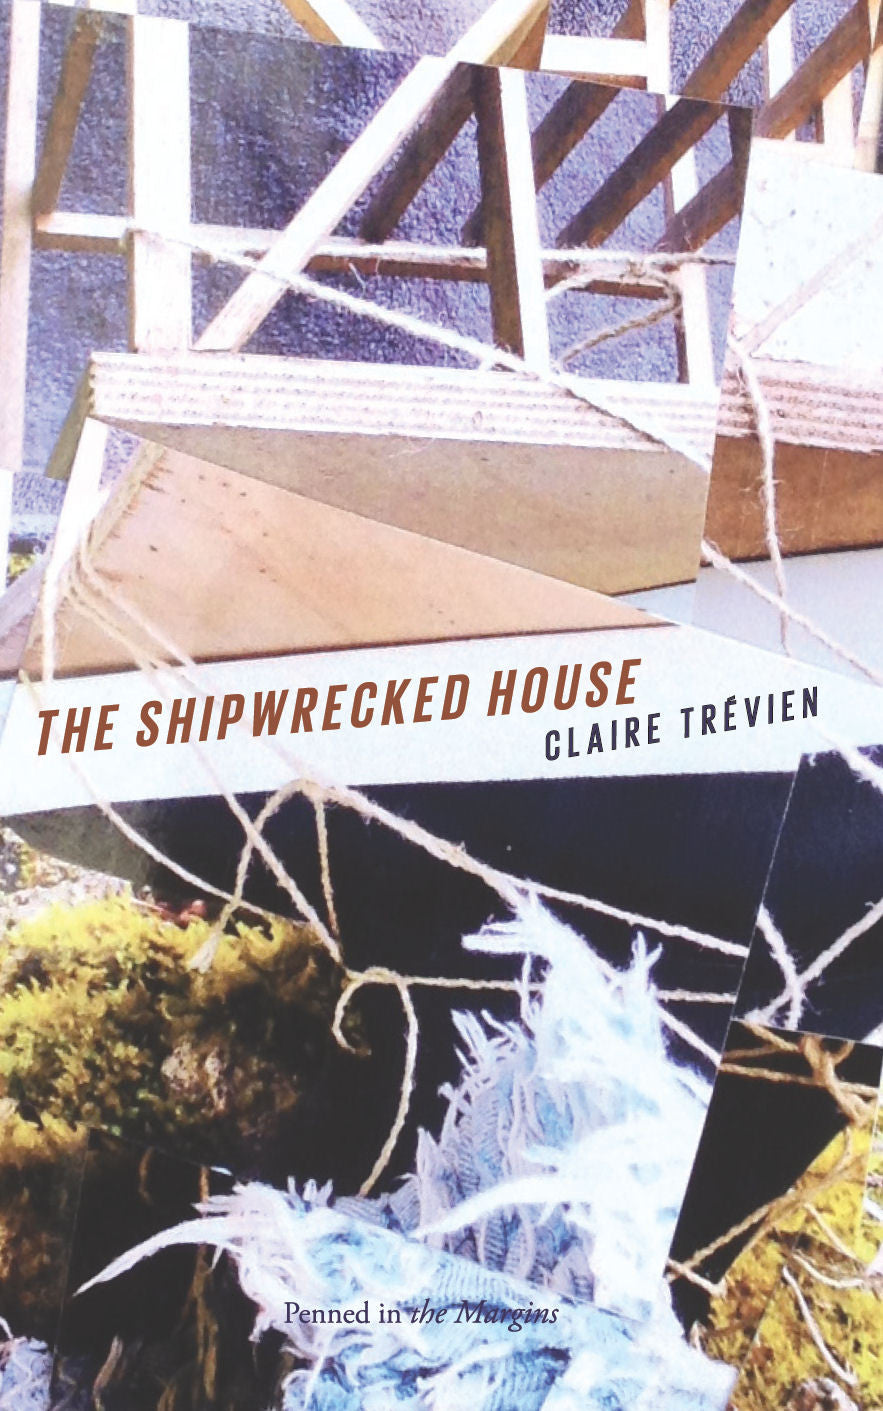 The Shipwrecked House